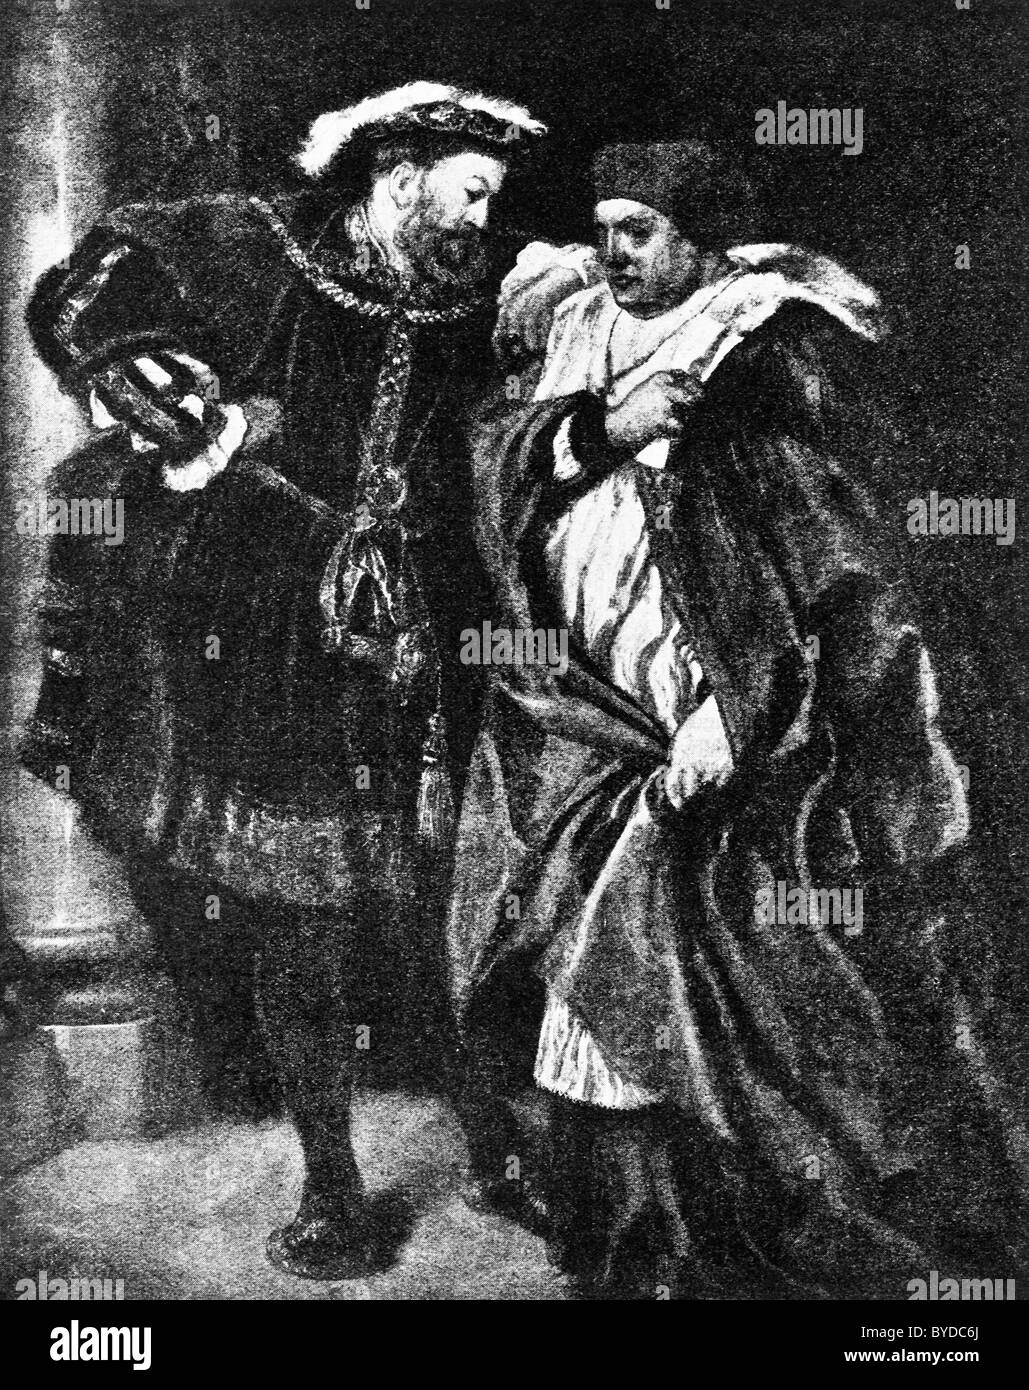 King Henry VIII talking to Cardinal Thomas Wolsey in a painting by Sir John Gilbert circa 1888 entitled 'Ego - Stock Image